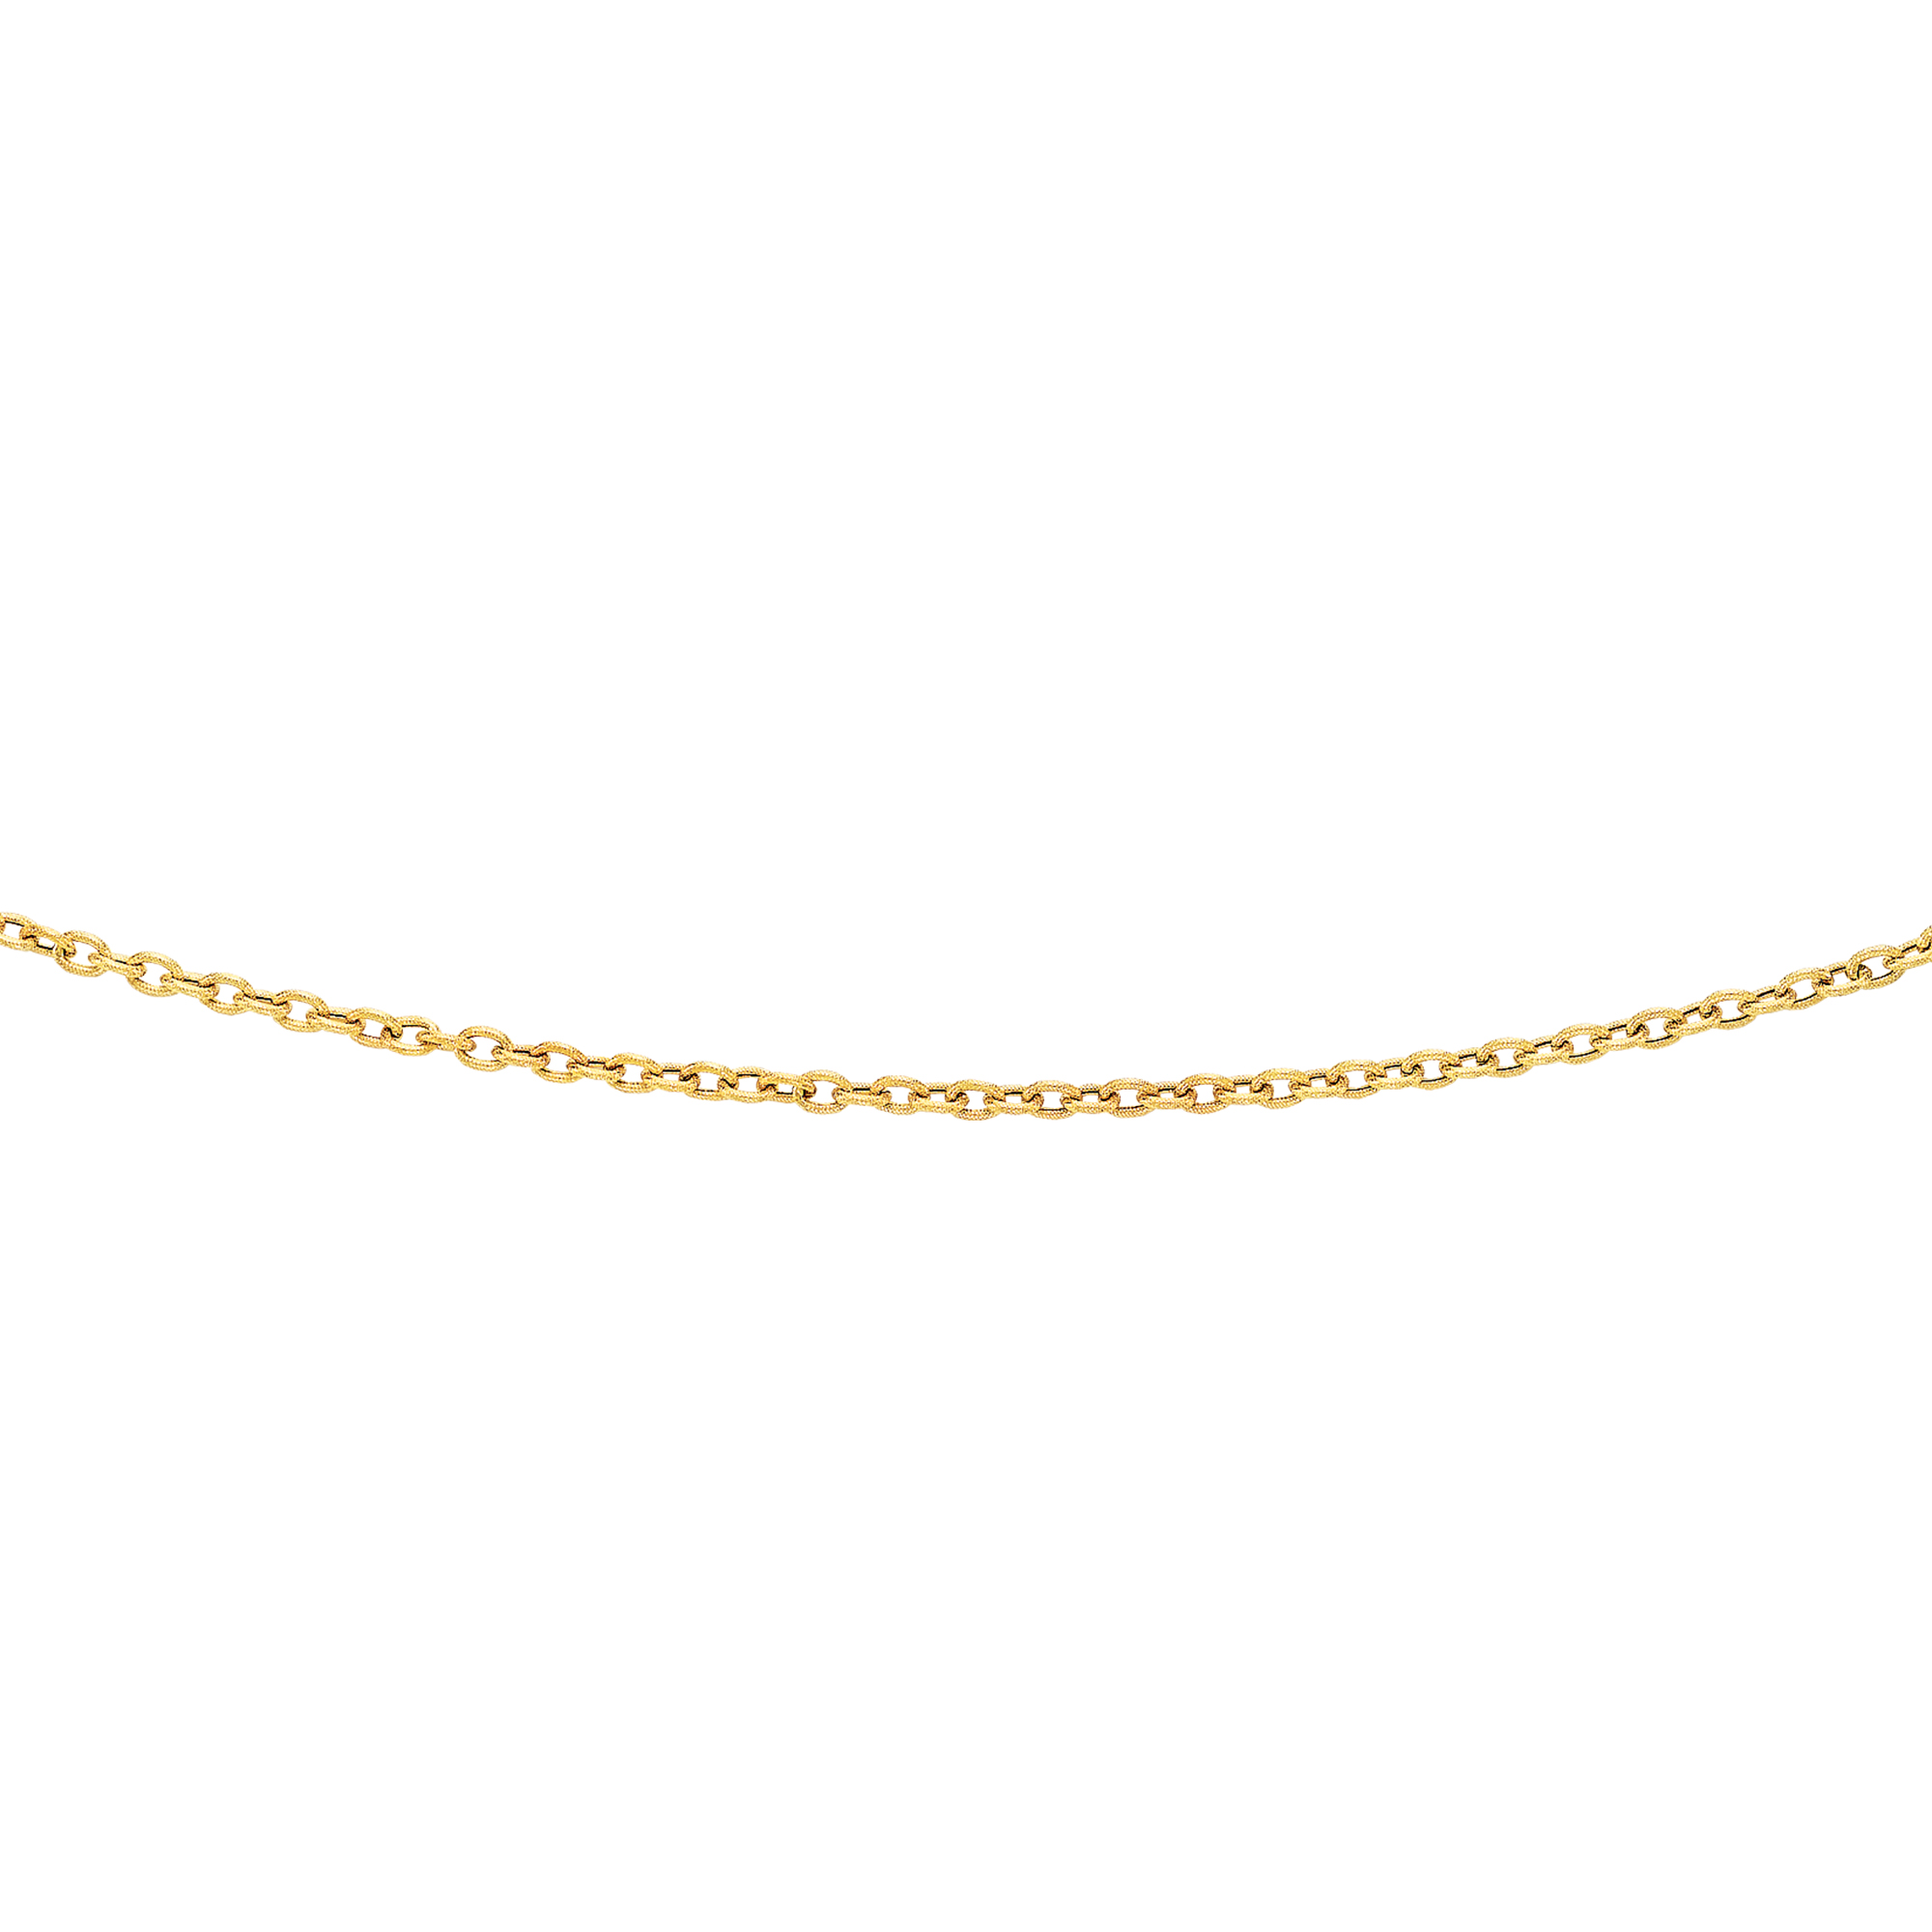 14kt 20 inches Yellow Gold 3.5mm Diamond Cut Oval Texturedd Link Chain with Lobster Clasp